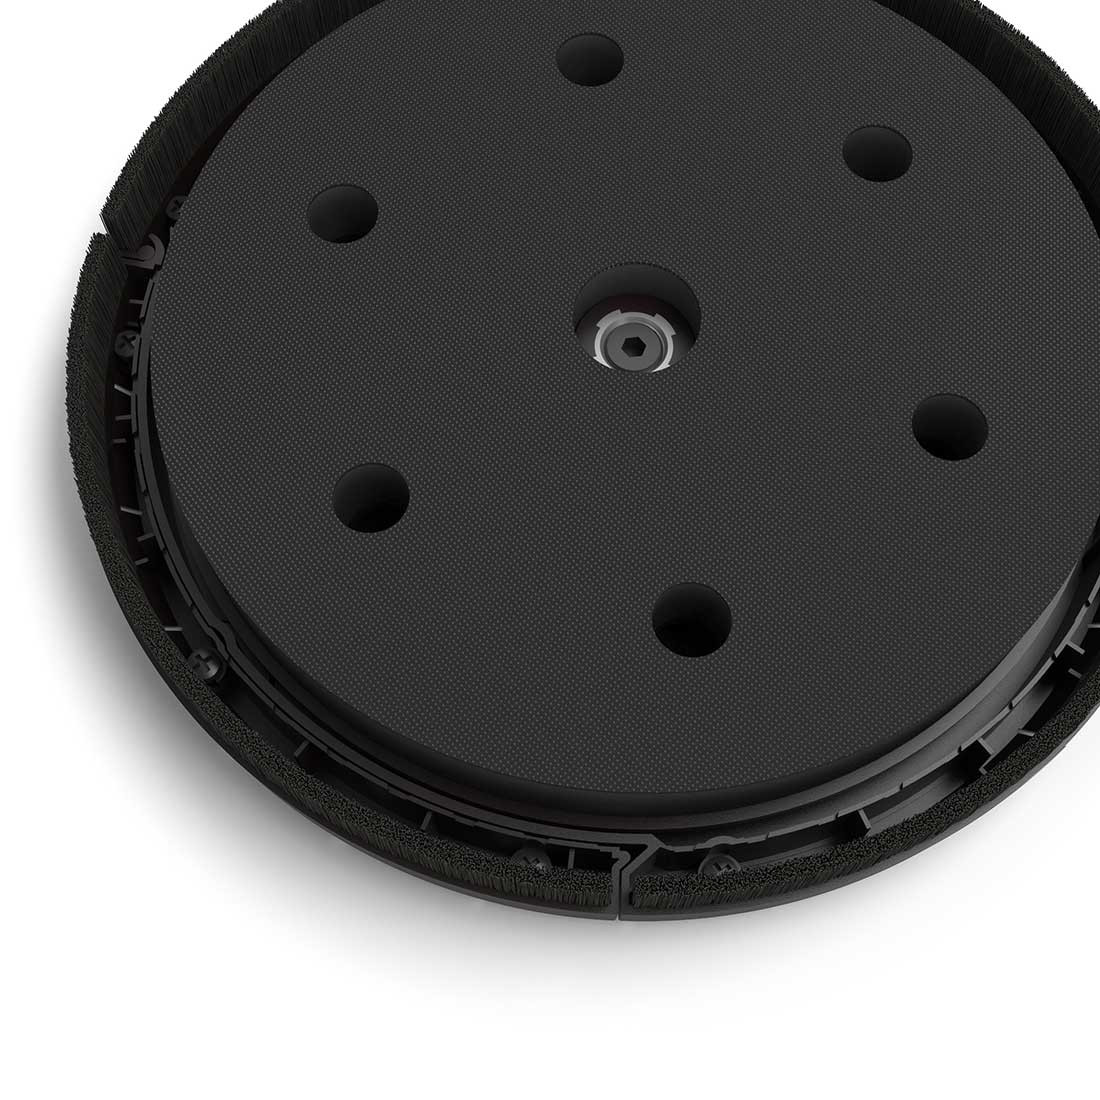 MENZER LHS 225 VARIO  perforated sanding disc